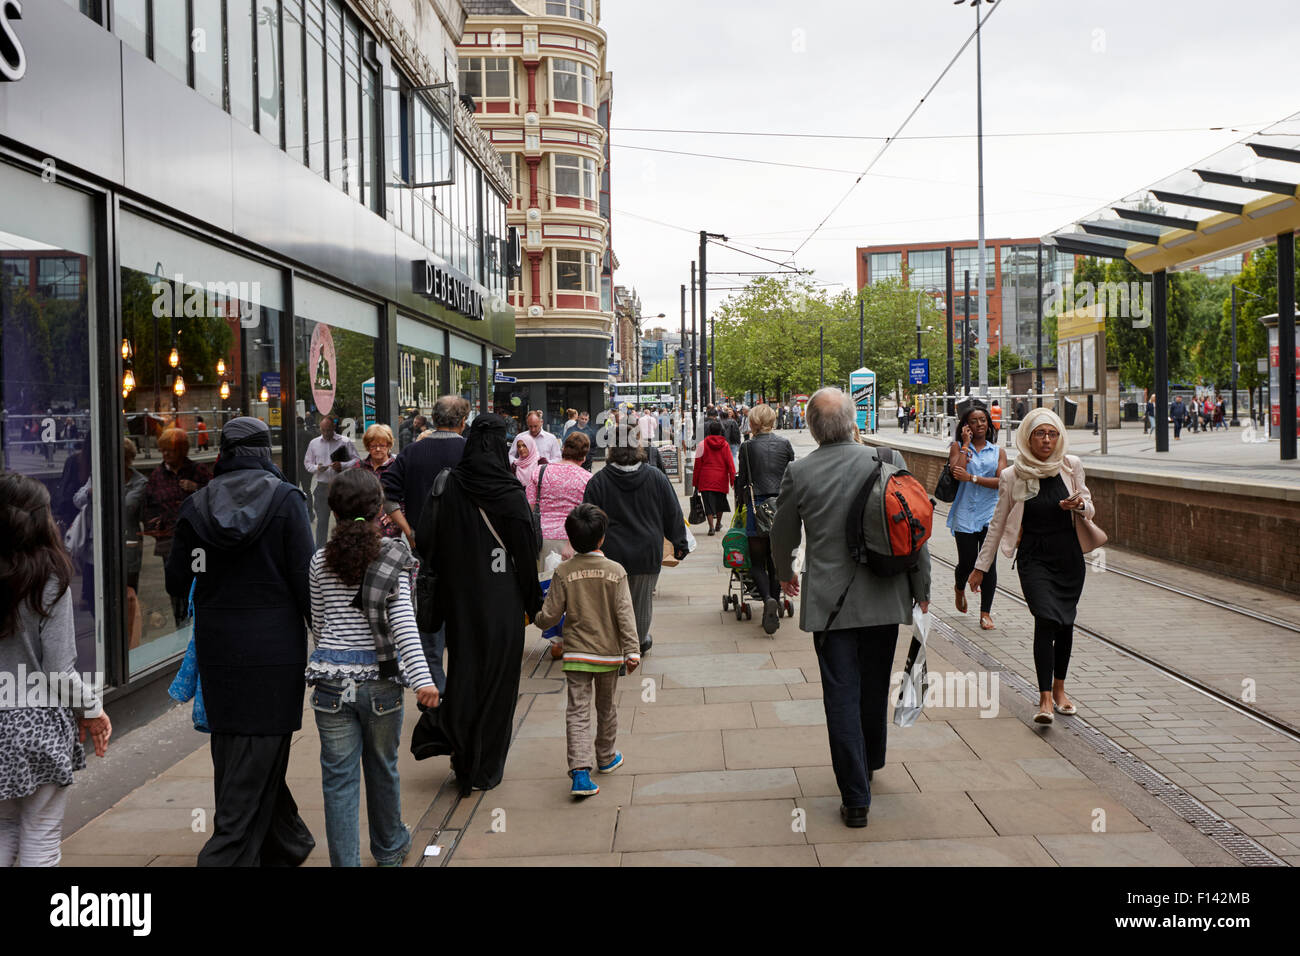 multi cultural and multi ethnic shoppers in city centre Manchester UK - Stock Image